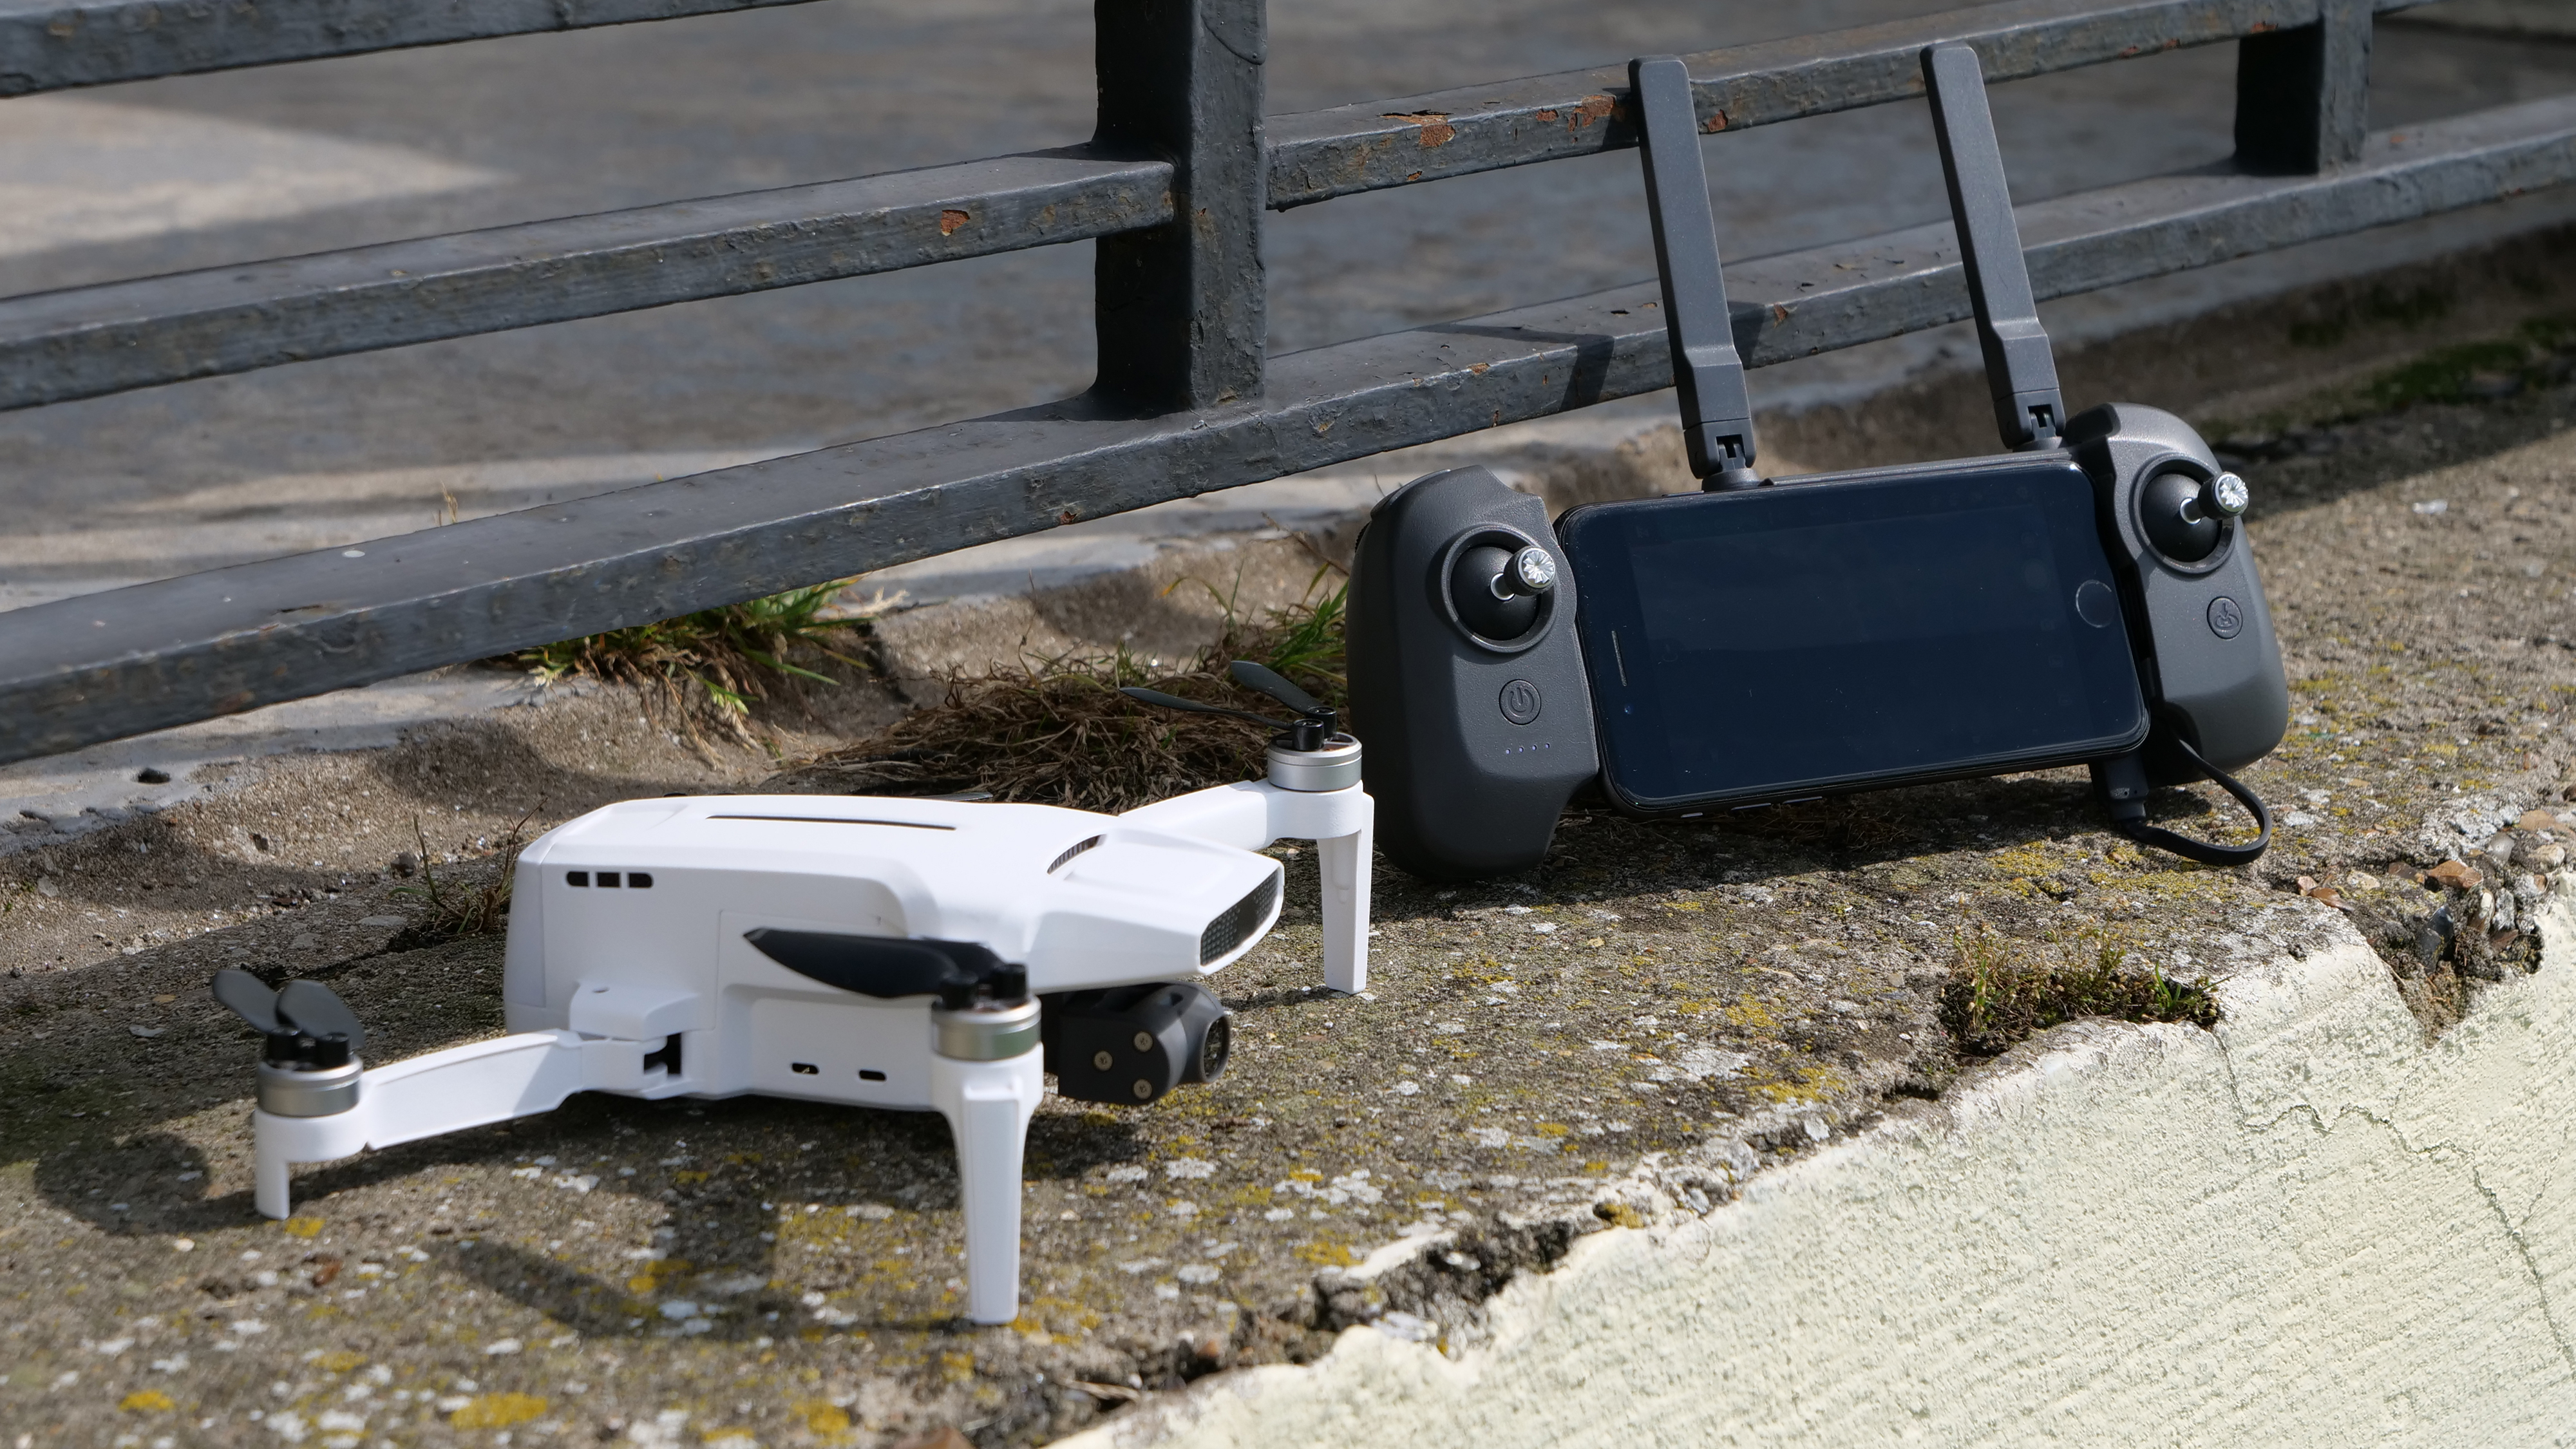 The FIMI X8 Mini drone next to its controller